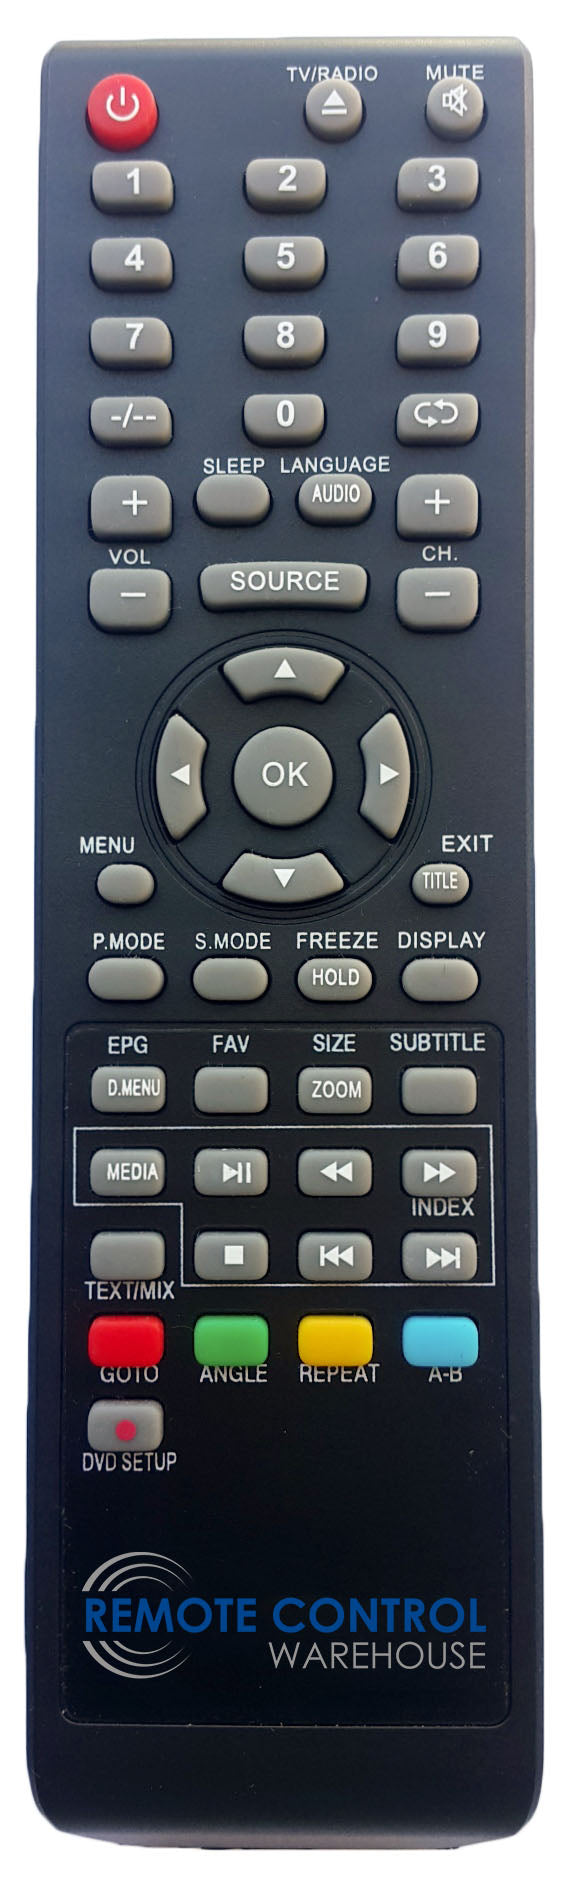 VEON REMOTE CONTROL SUITS -  V55UHDS  4K ULTRA HD LED/LCD  TV